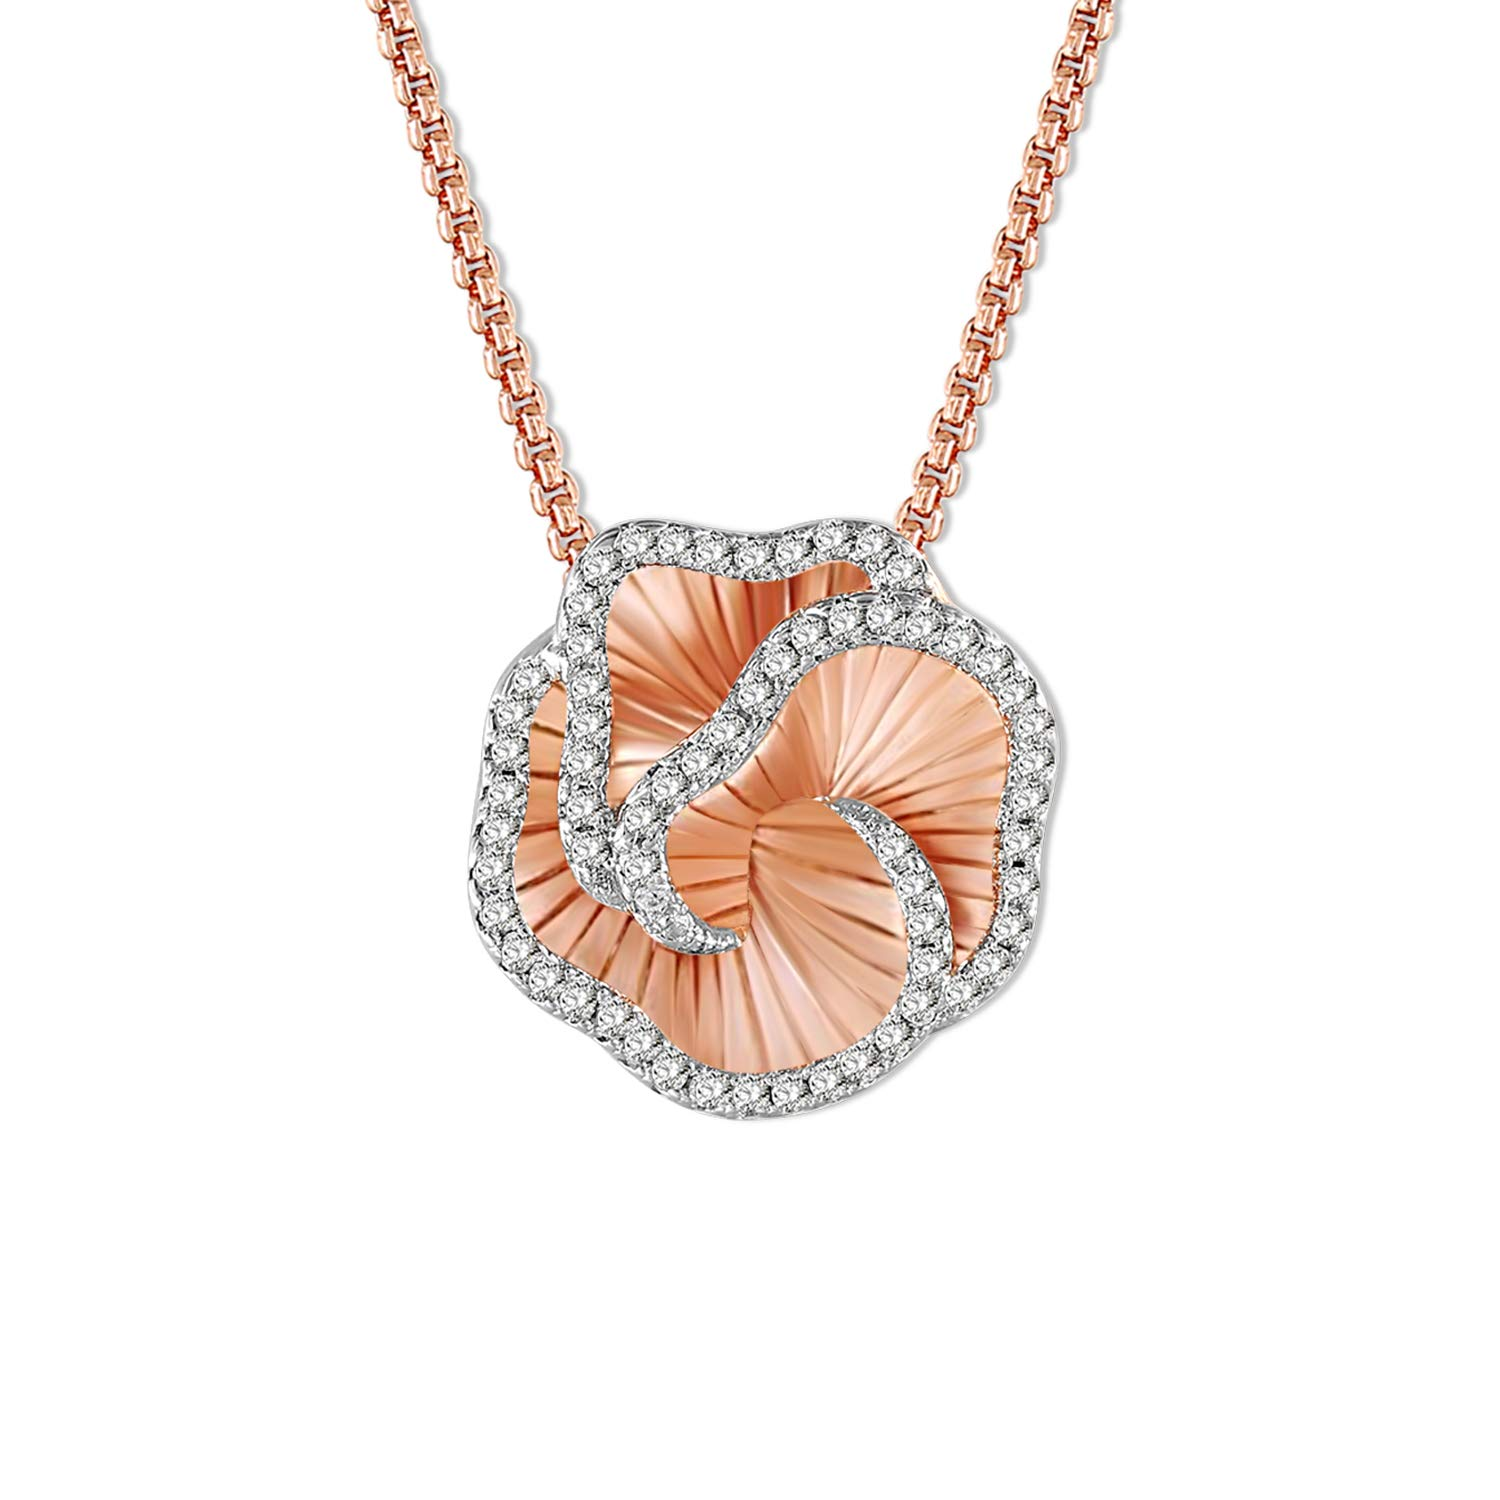 SNZM 3D Rose Flower Pendant Necklace for Women Cubic Zirconia Rose Gold Necklace for Mom Wife